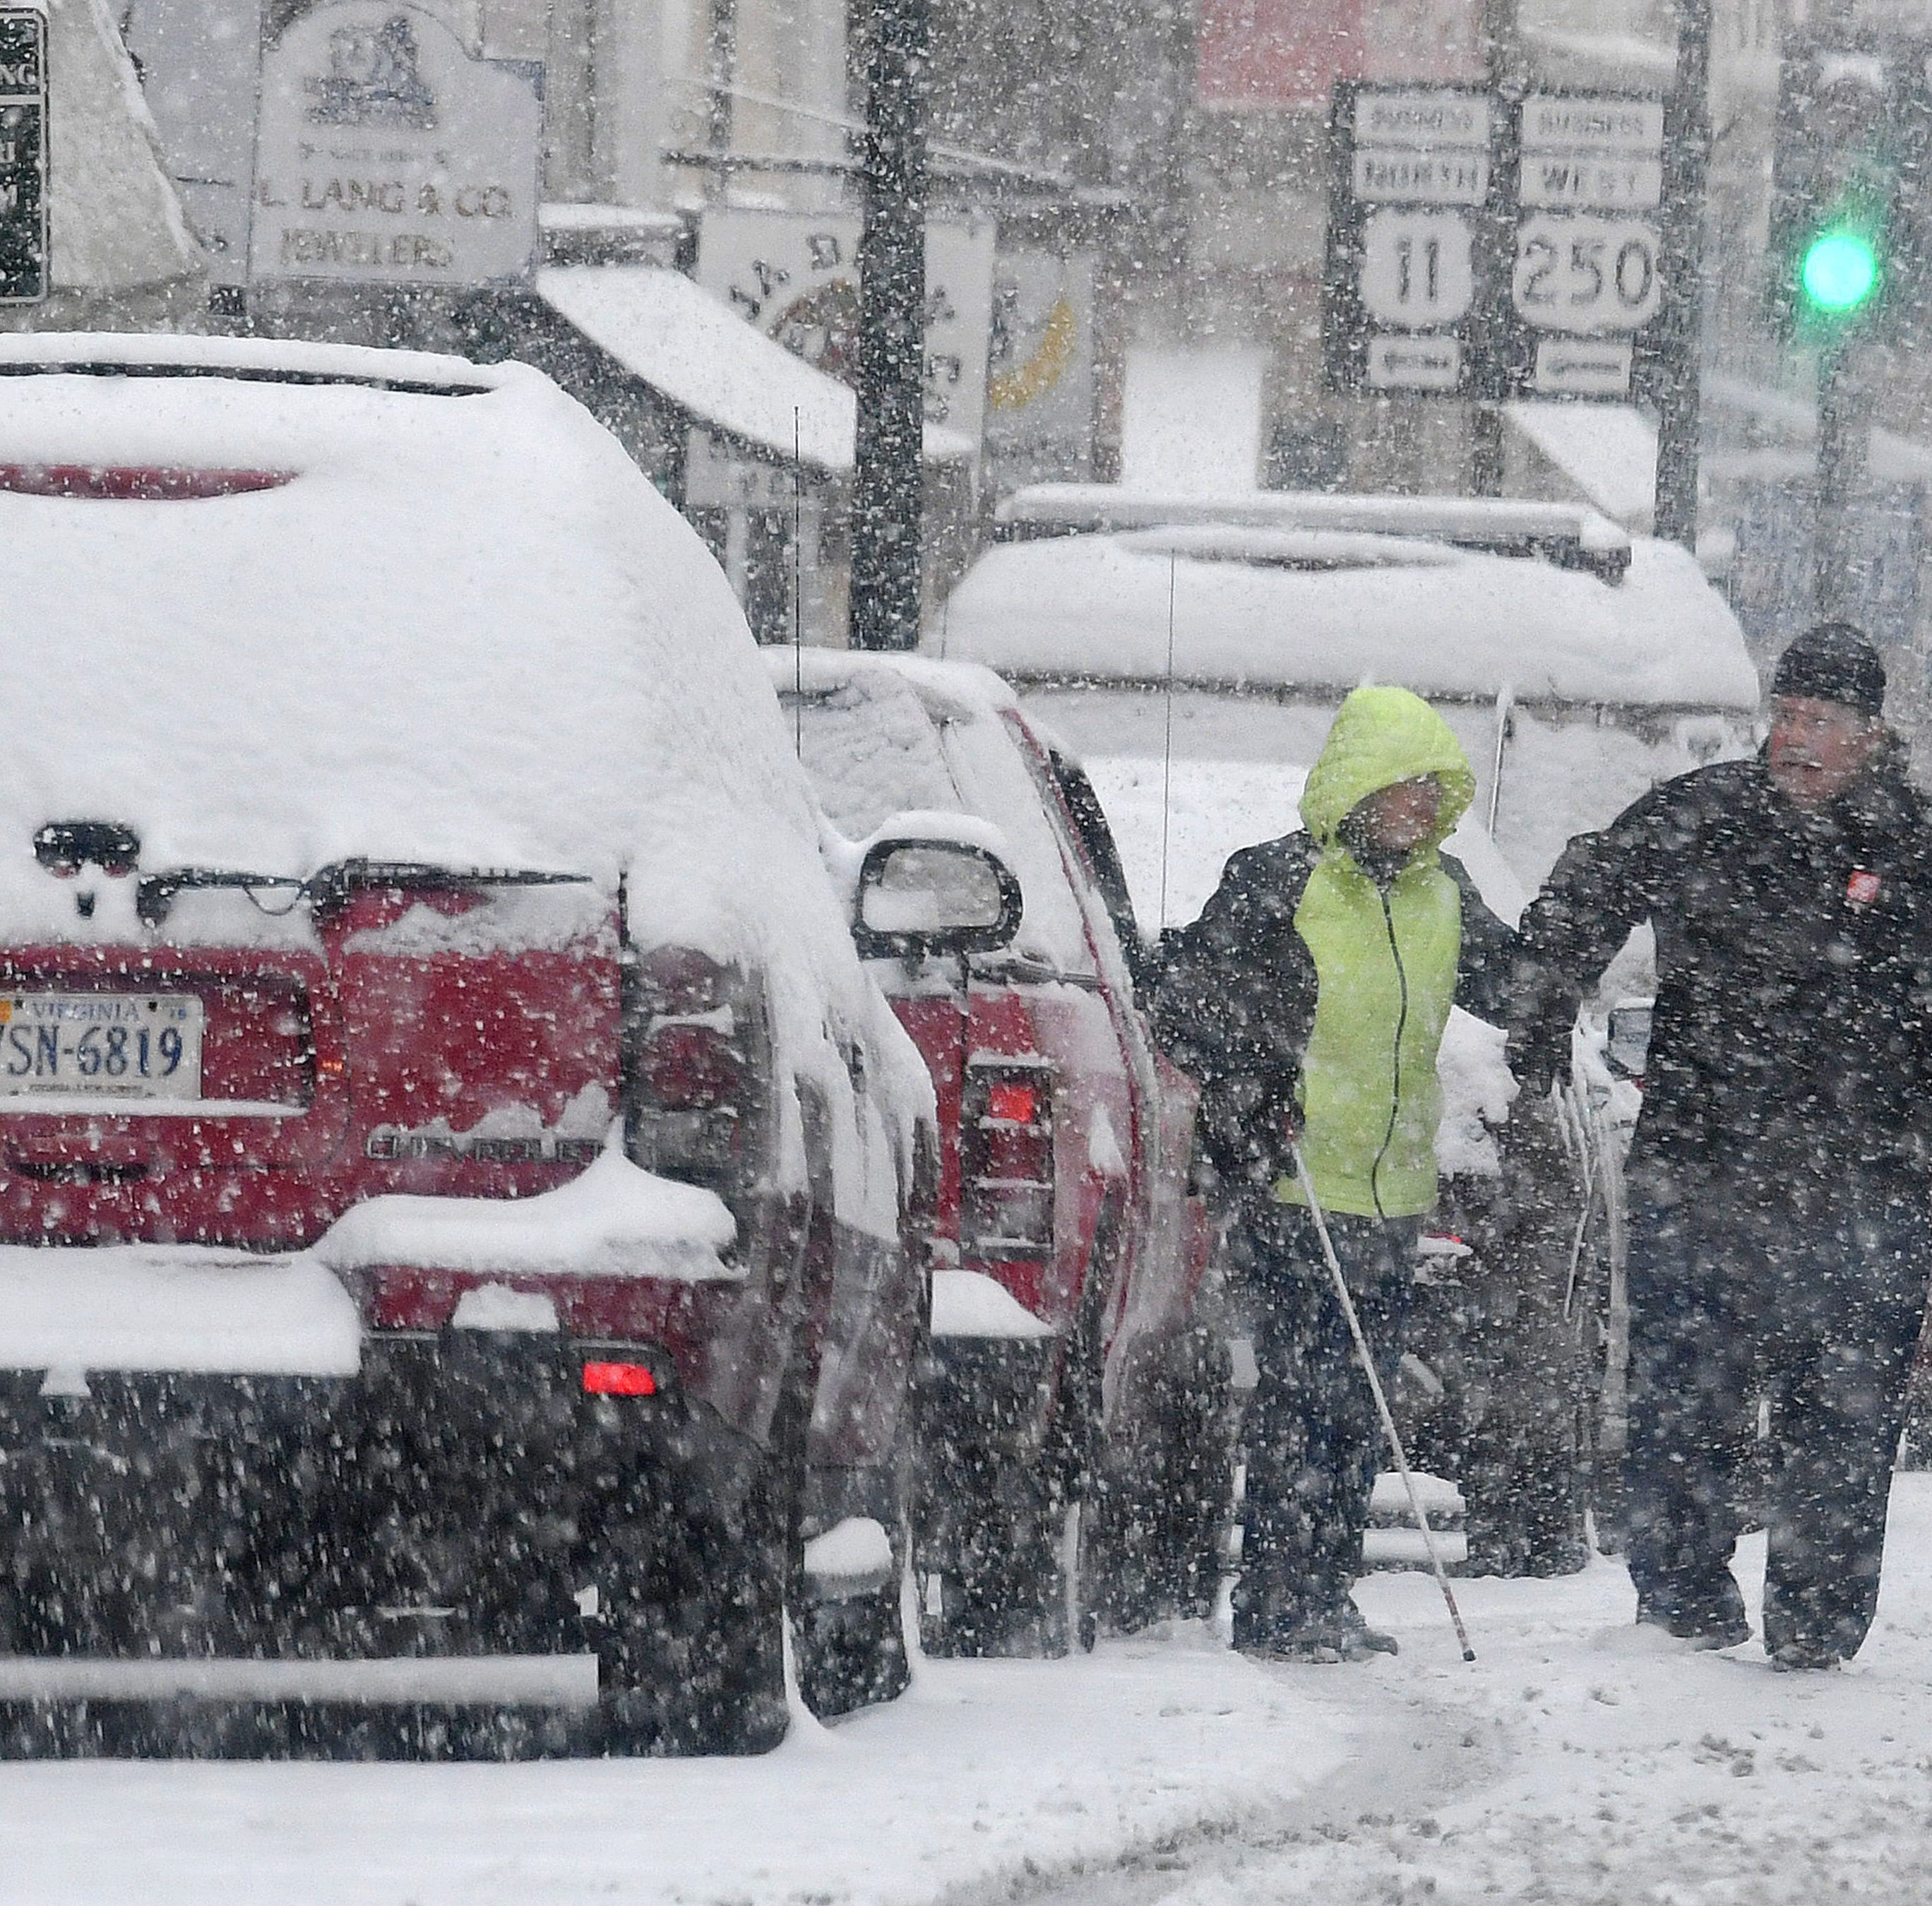 Snow continues to fall as a man assists a lady after parking on West Beverley Street in downtown Staunton on Sunday, Dec. 9, 2018.